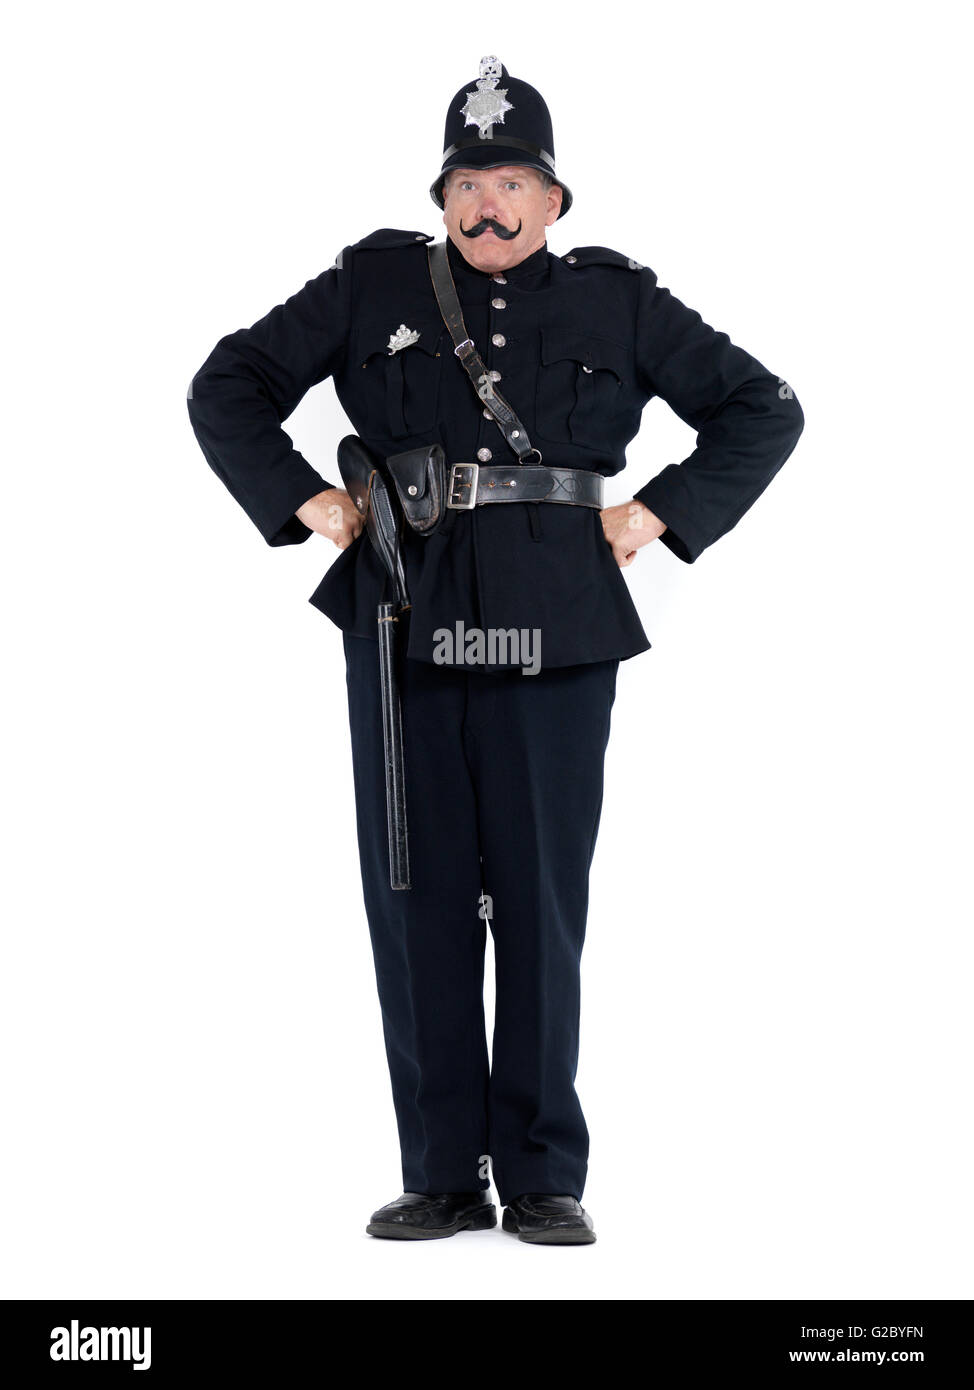 Vintage policeman expressing authority - Stock Image